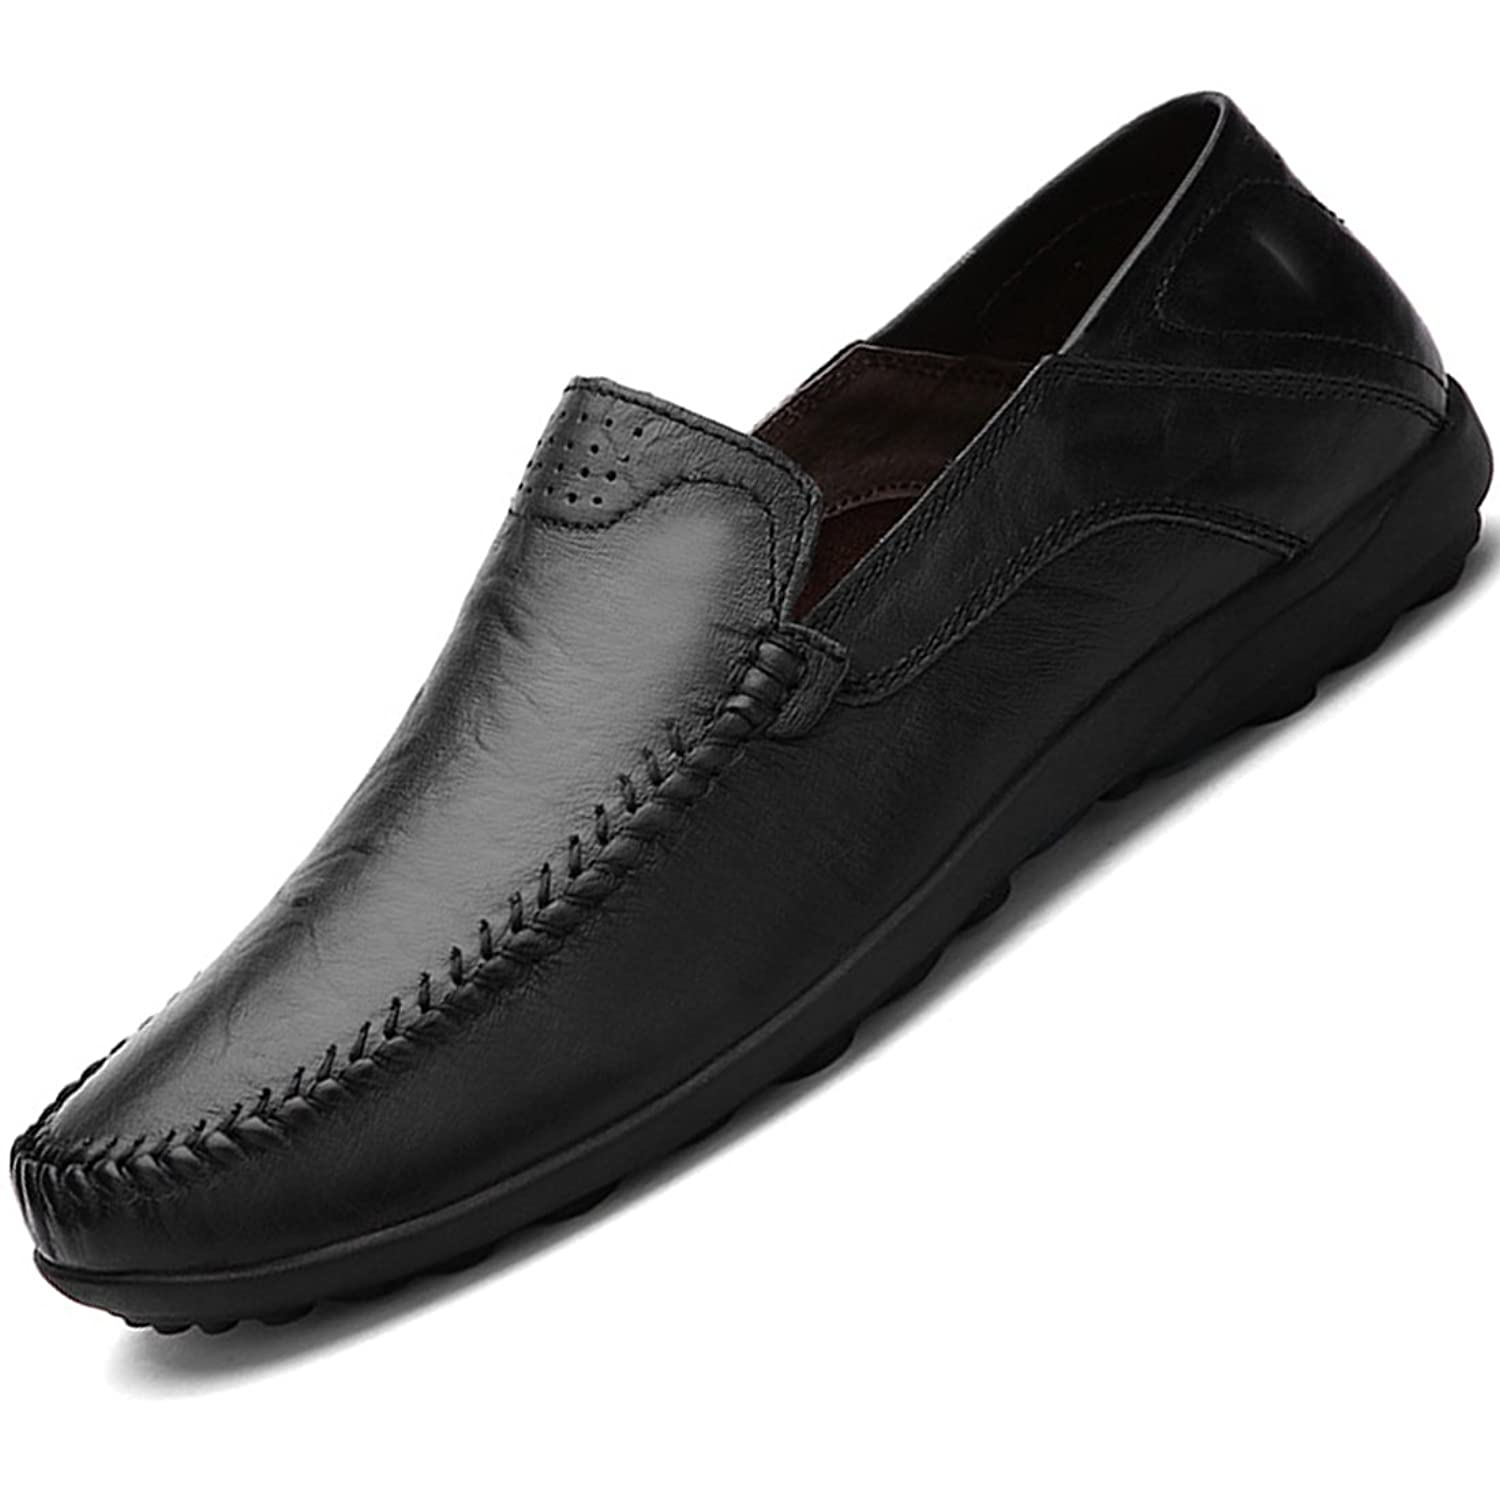 Men's Casual Driving Loafer